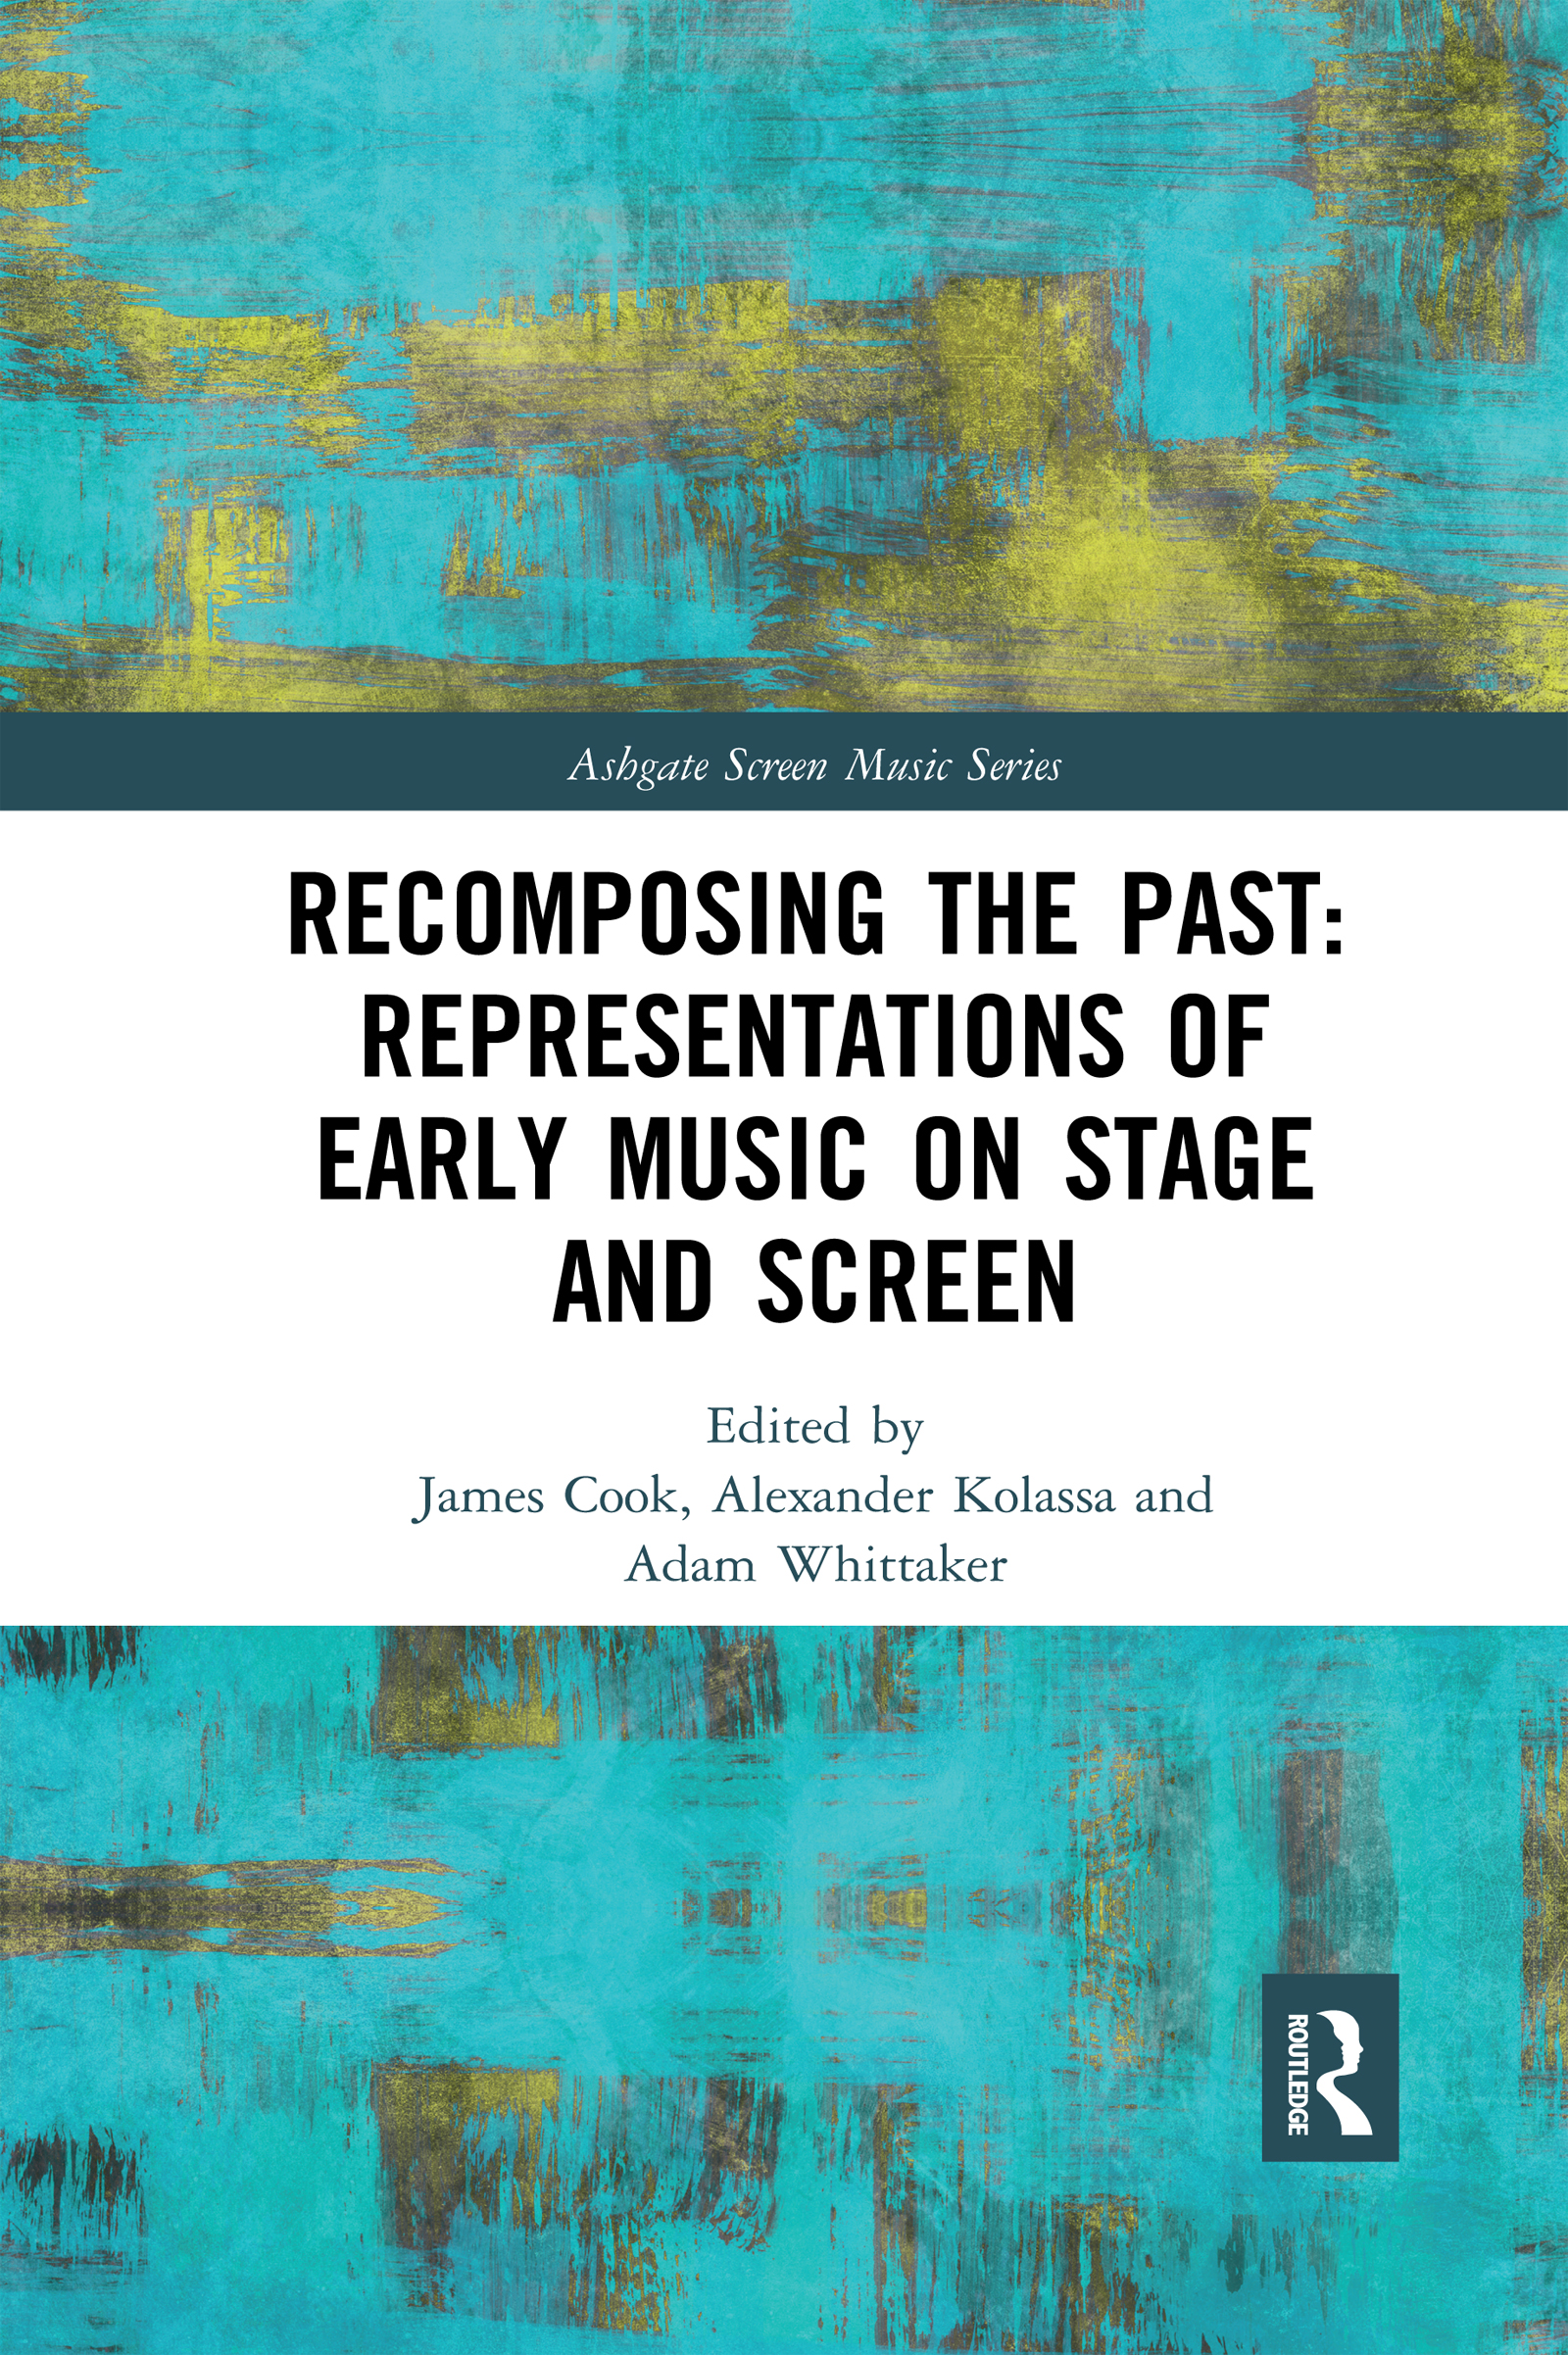 Recomposing the Past: Representations of Early Music on Stage and Screen